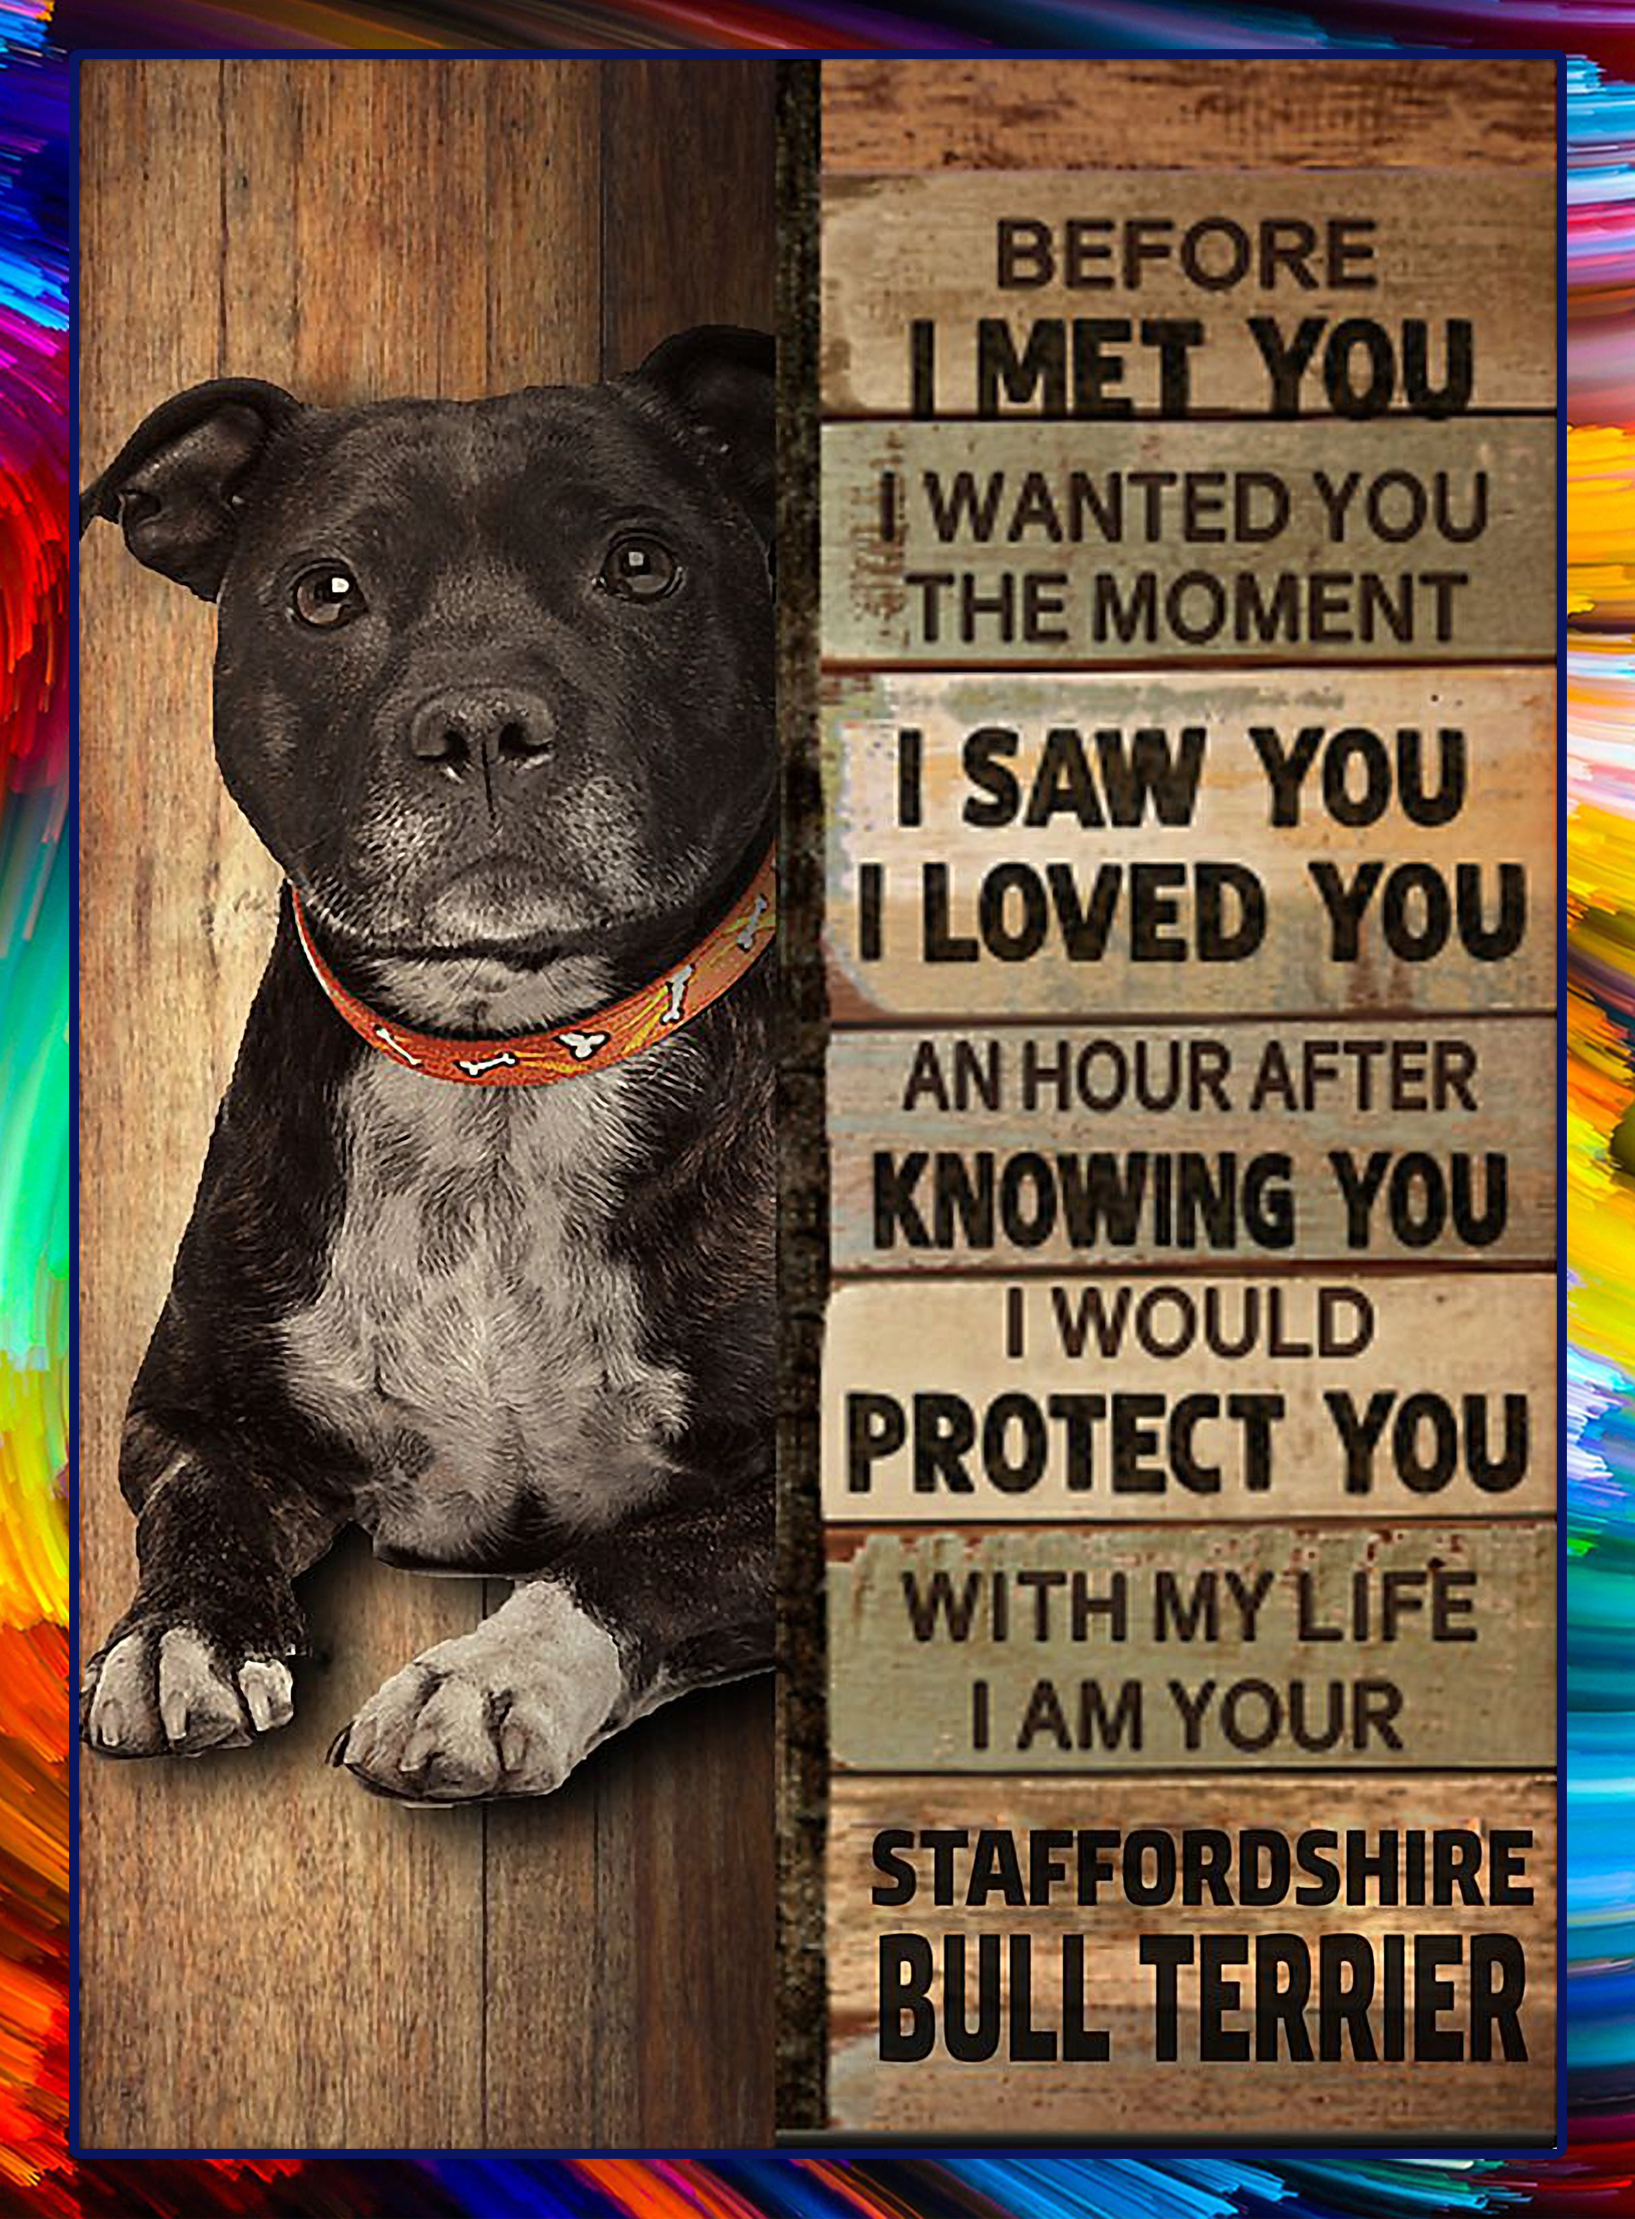 Staffordshire bull terrier before I met you poster - A4